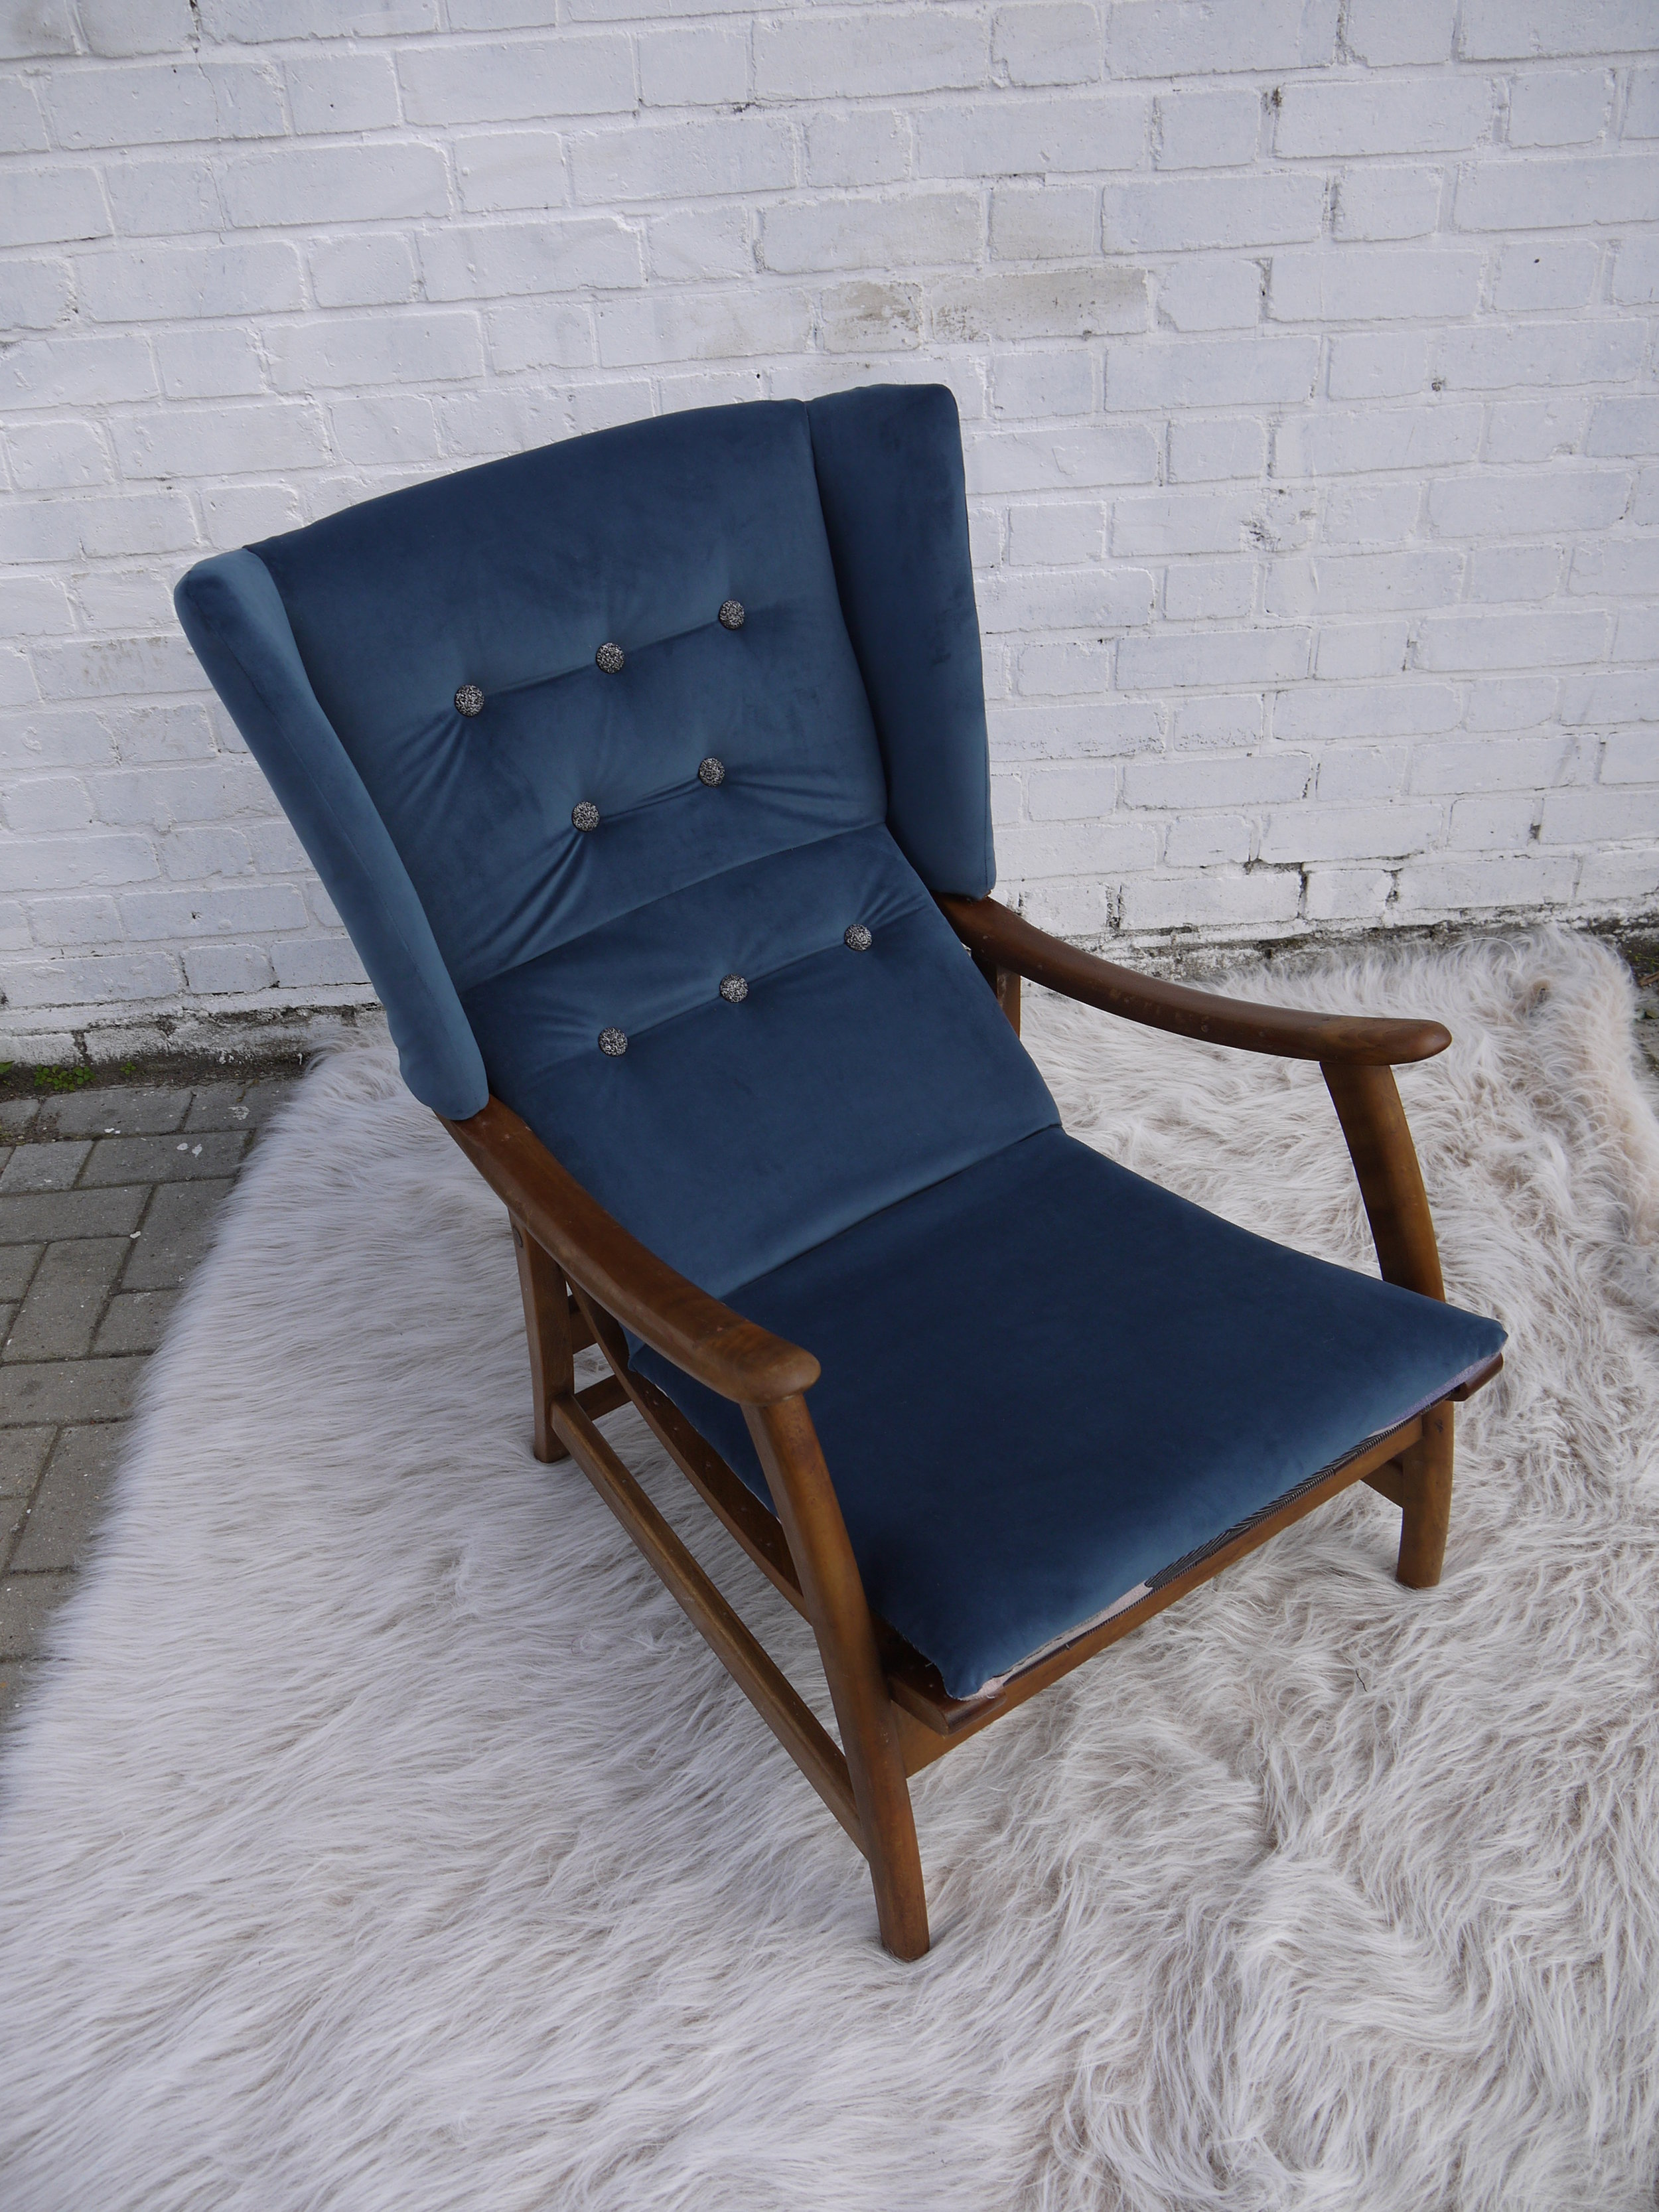 'Uncle Geoffrey' - This mid century recliner has been completely restored and revived and upholstered in a beautiful blue velvet with black/silver detailed buttons. Contrast fabric on the underside and back - I'll let the chair speak for itself.*SOLD*